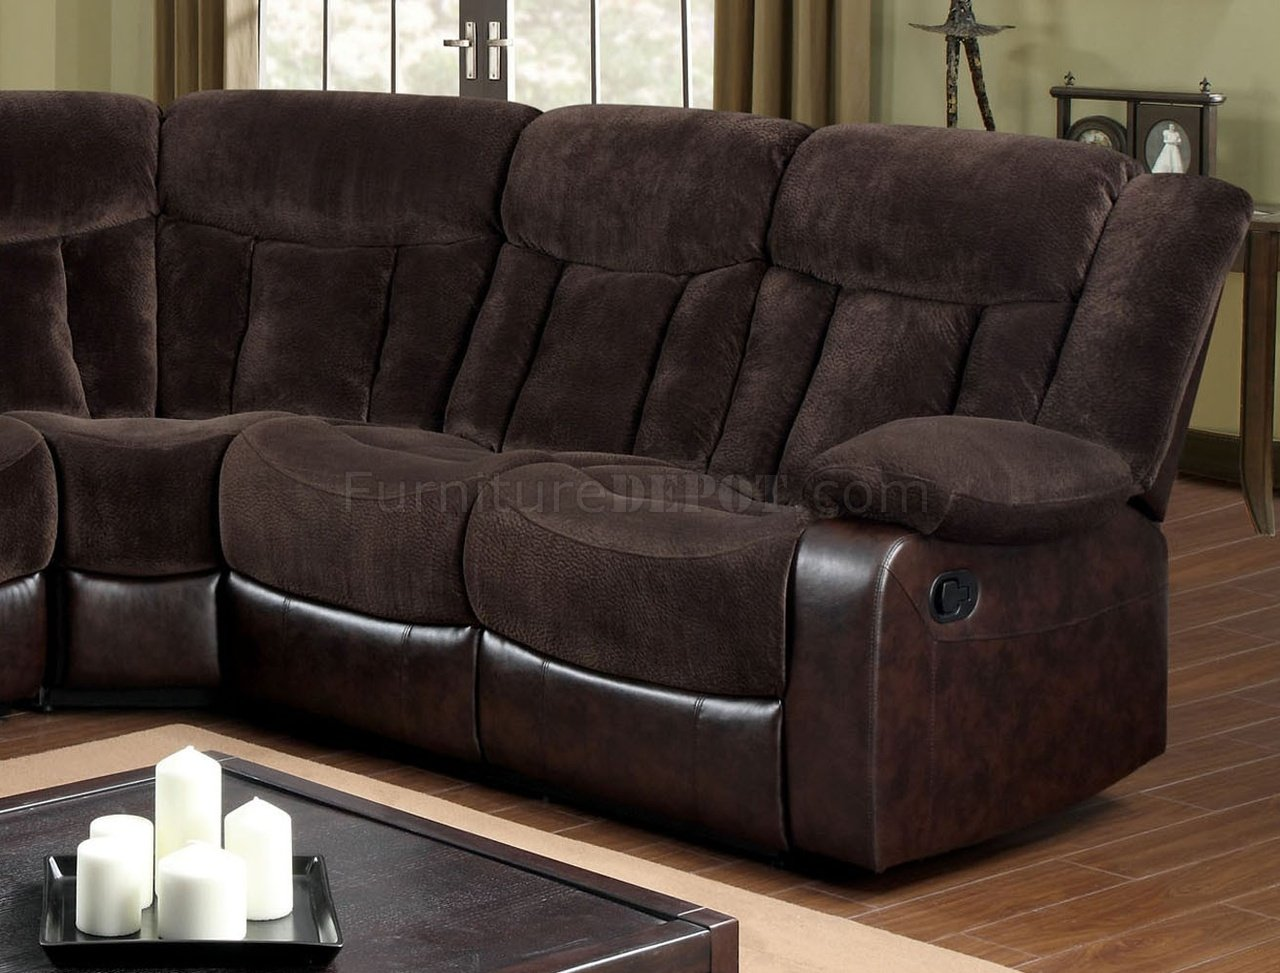 reclining sectional sofa fabric white leather armless hampshire cm6809 in brown